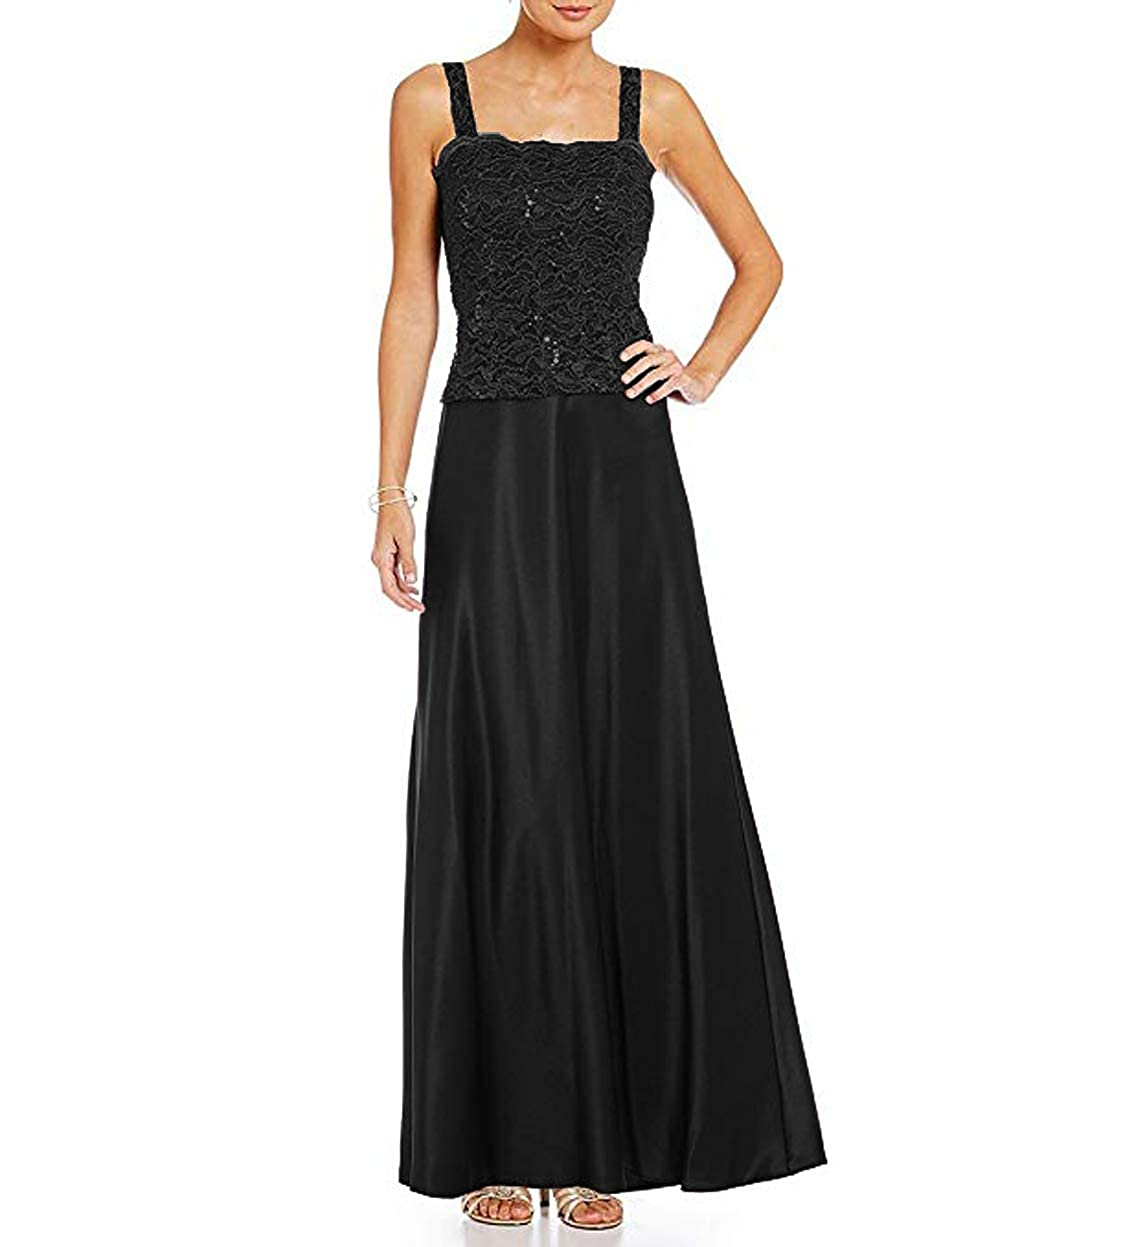 Black Women's Satin Ankle Length Mother of The Bride Dresses with Lace Jacket Plus Size 2 Piece